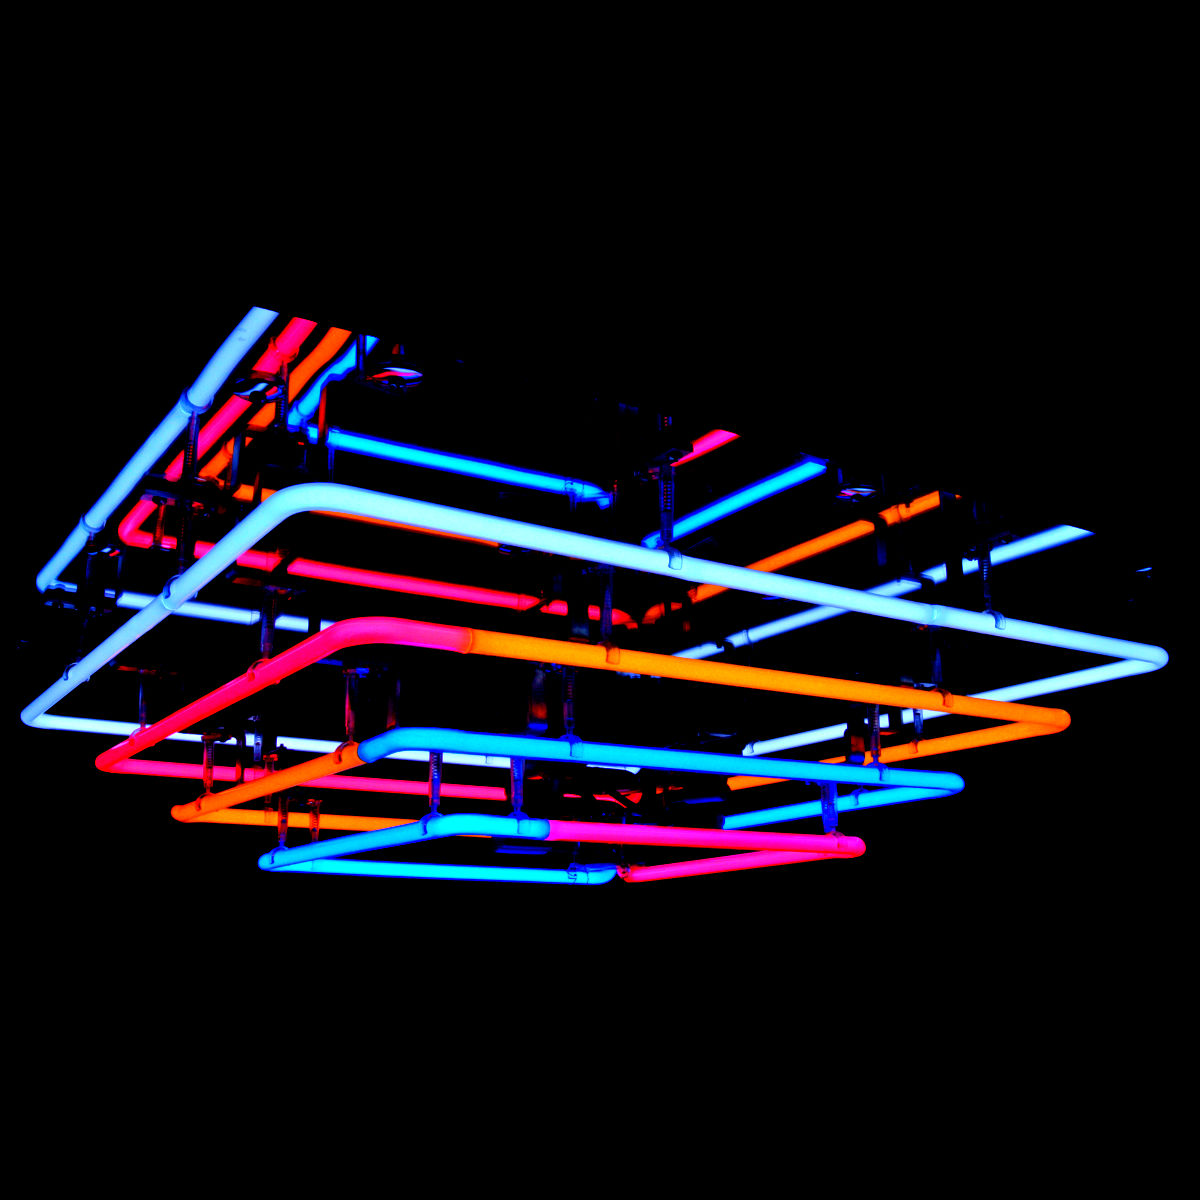 resized square neon chandelier.jpg